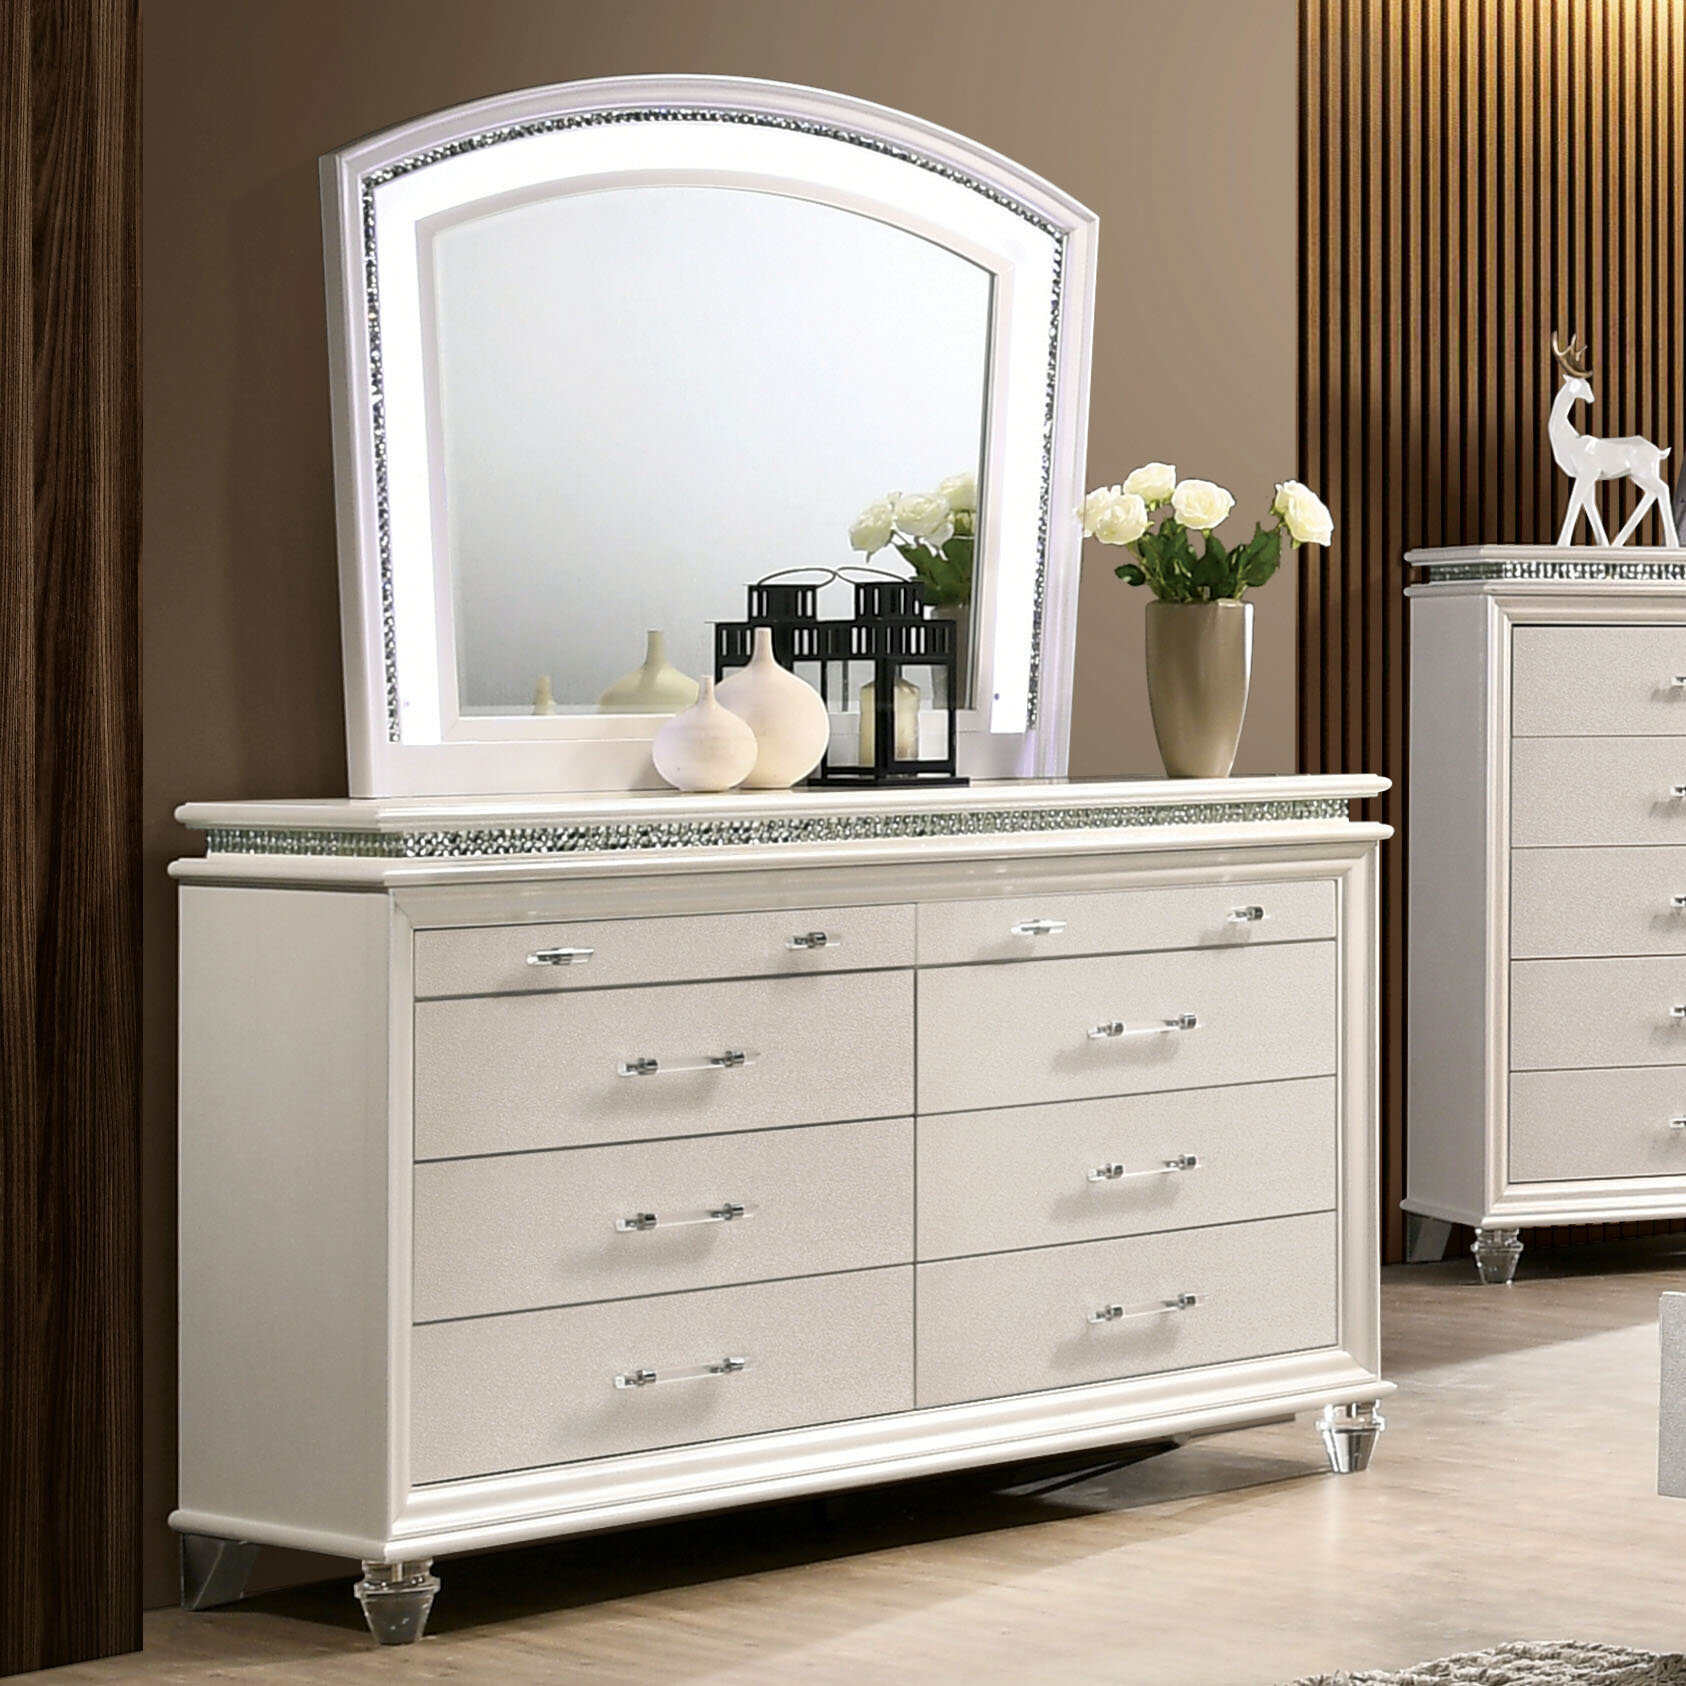 Everly Quinn Serio 8 Drawer Double Dresser With Mirror Reviews Wayfair